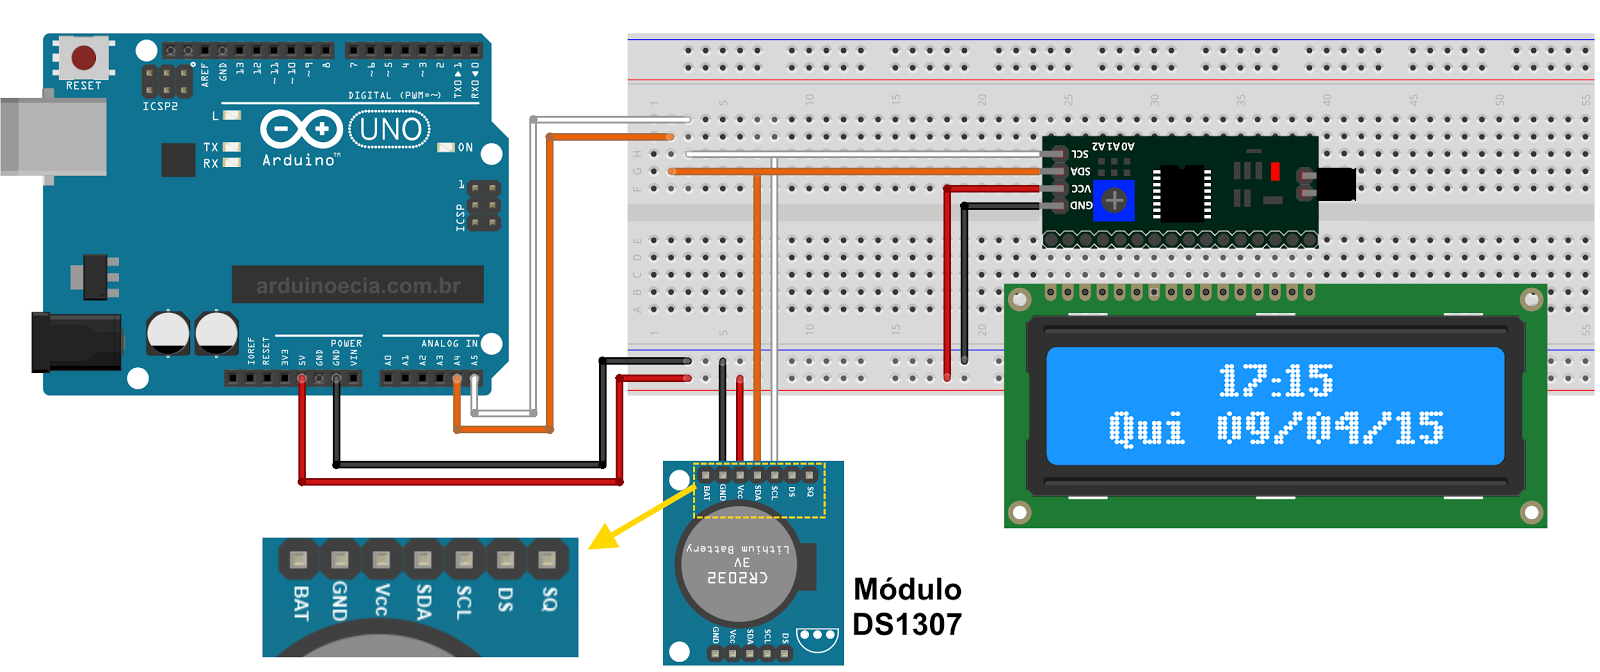 Access Control With Arduino And Ds3231 Real Time Clock Circuit Schematics Display I2c Rtc Diagram Circuito Lcd 16x2 Ds1307